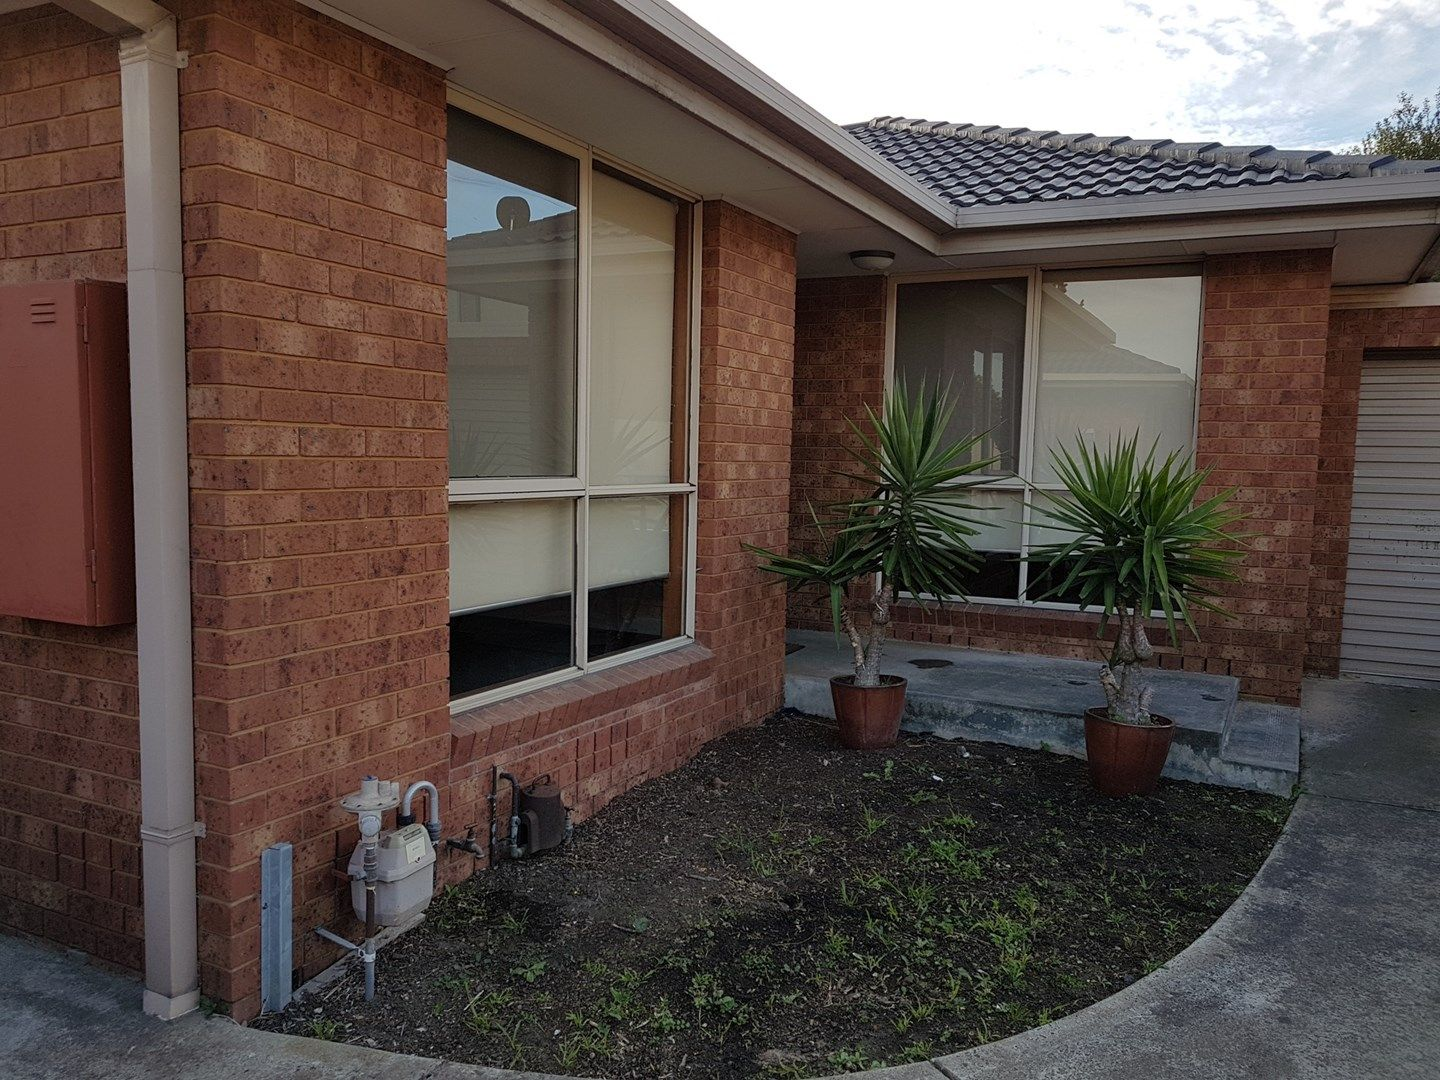 2/1345 Heatherton Rd, Dandenong North VIC 3175, Image 0